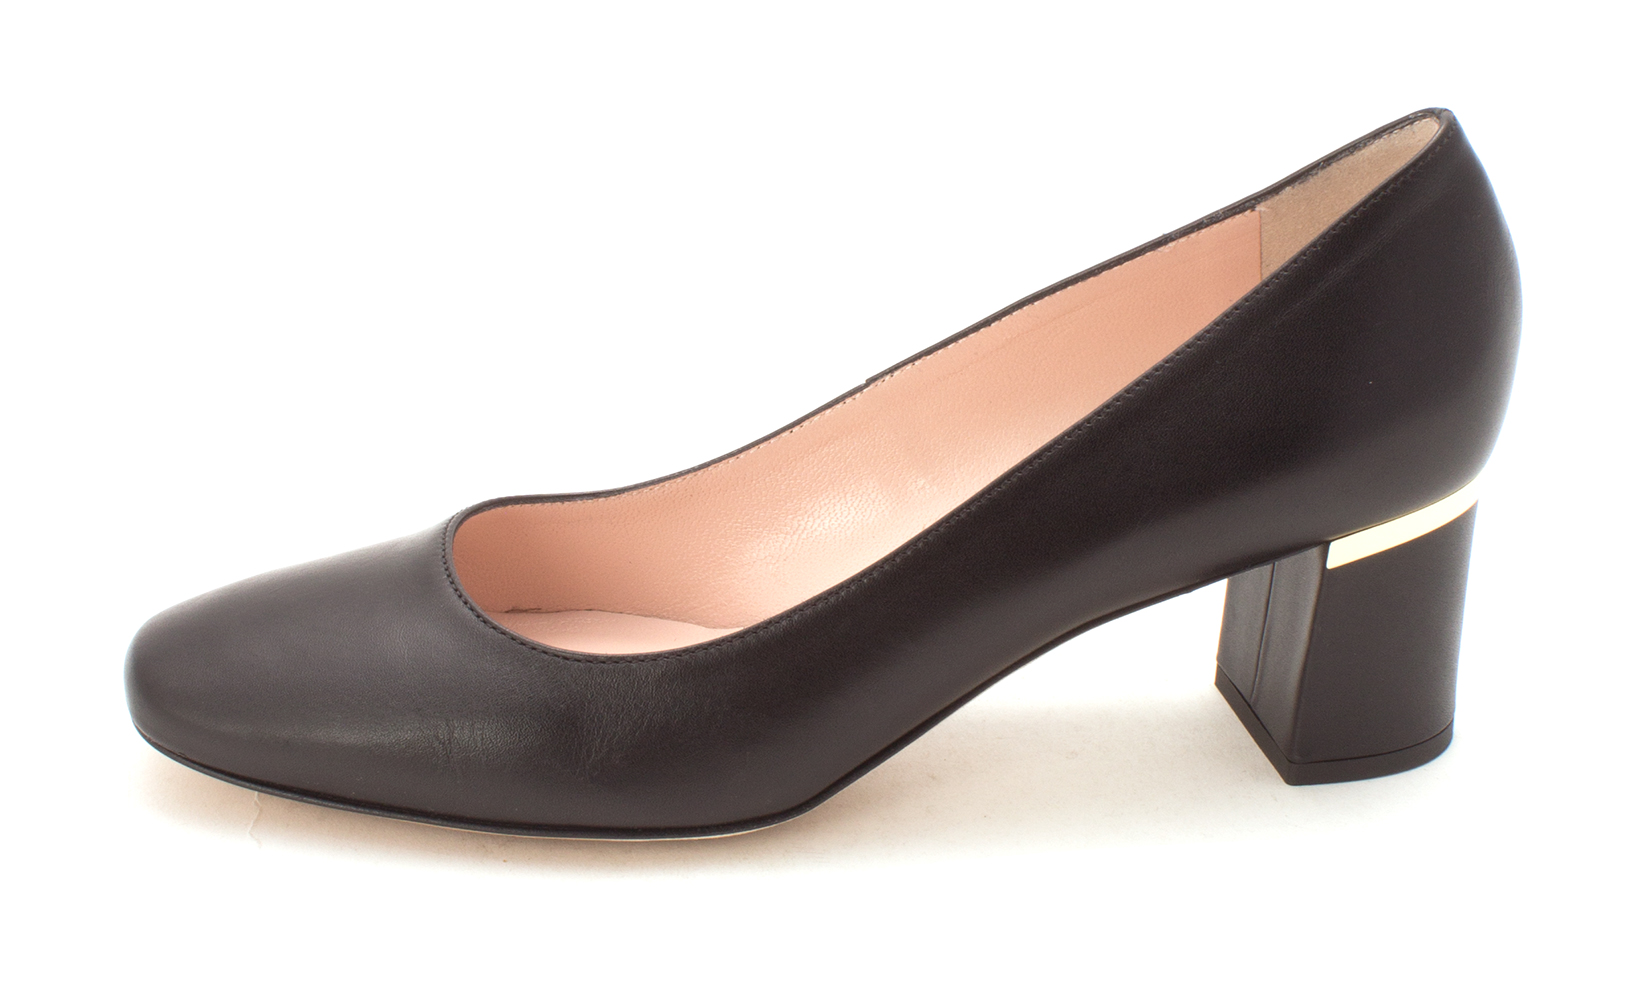 efe09d981dd Kate Spade New York Womens dolores too Closed Toe D-orsay Pumps ...